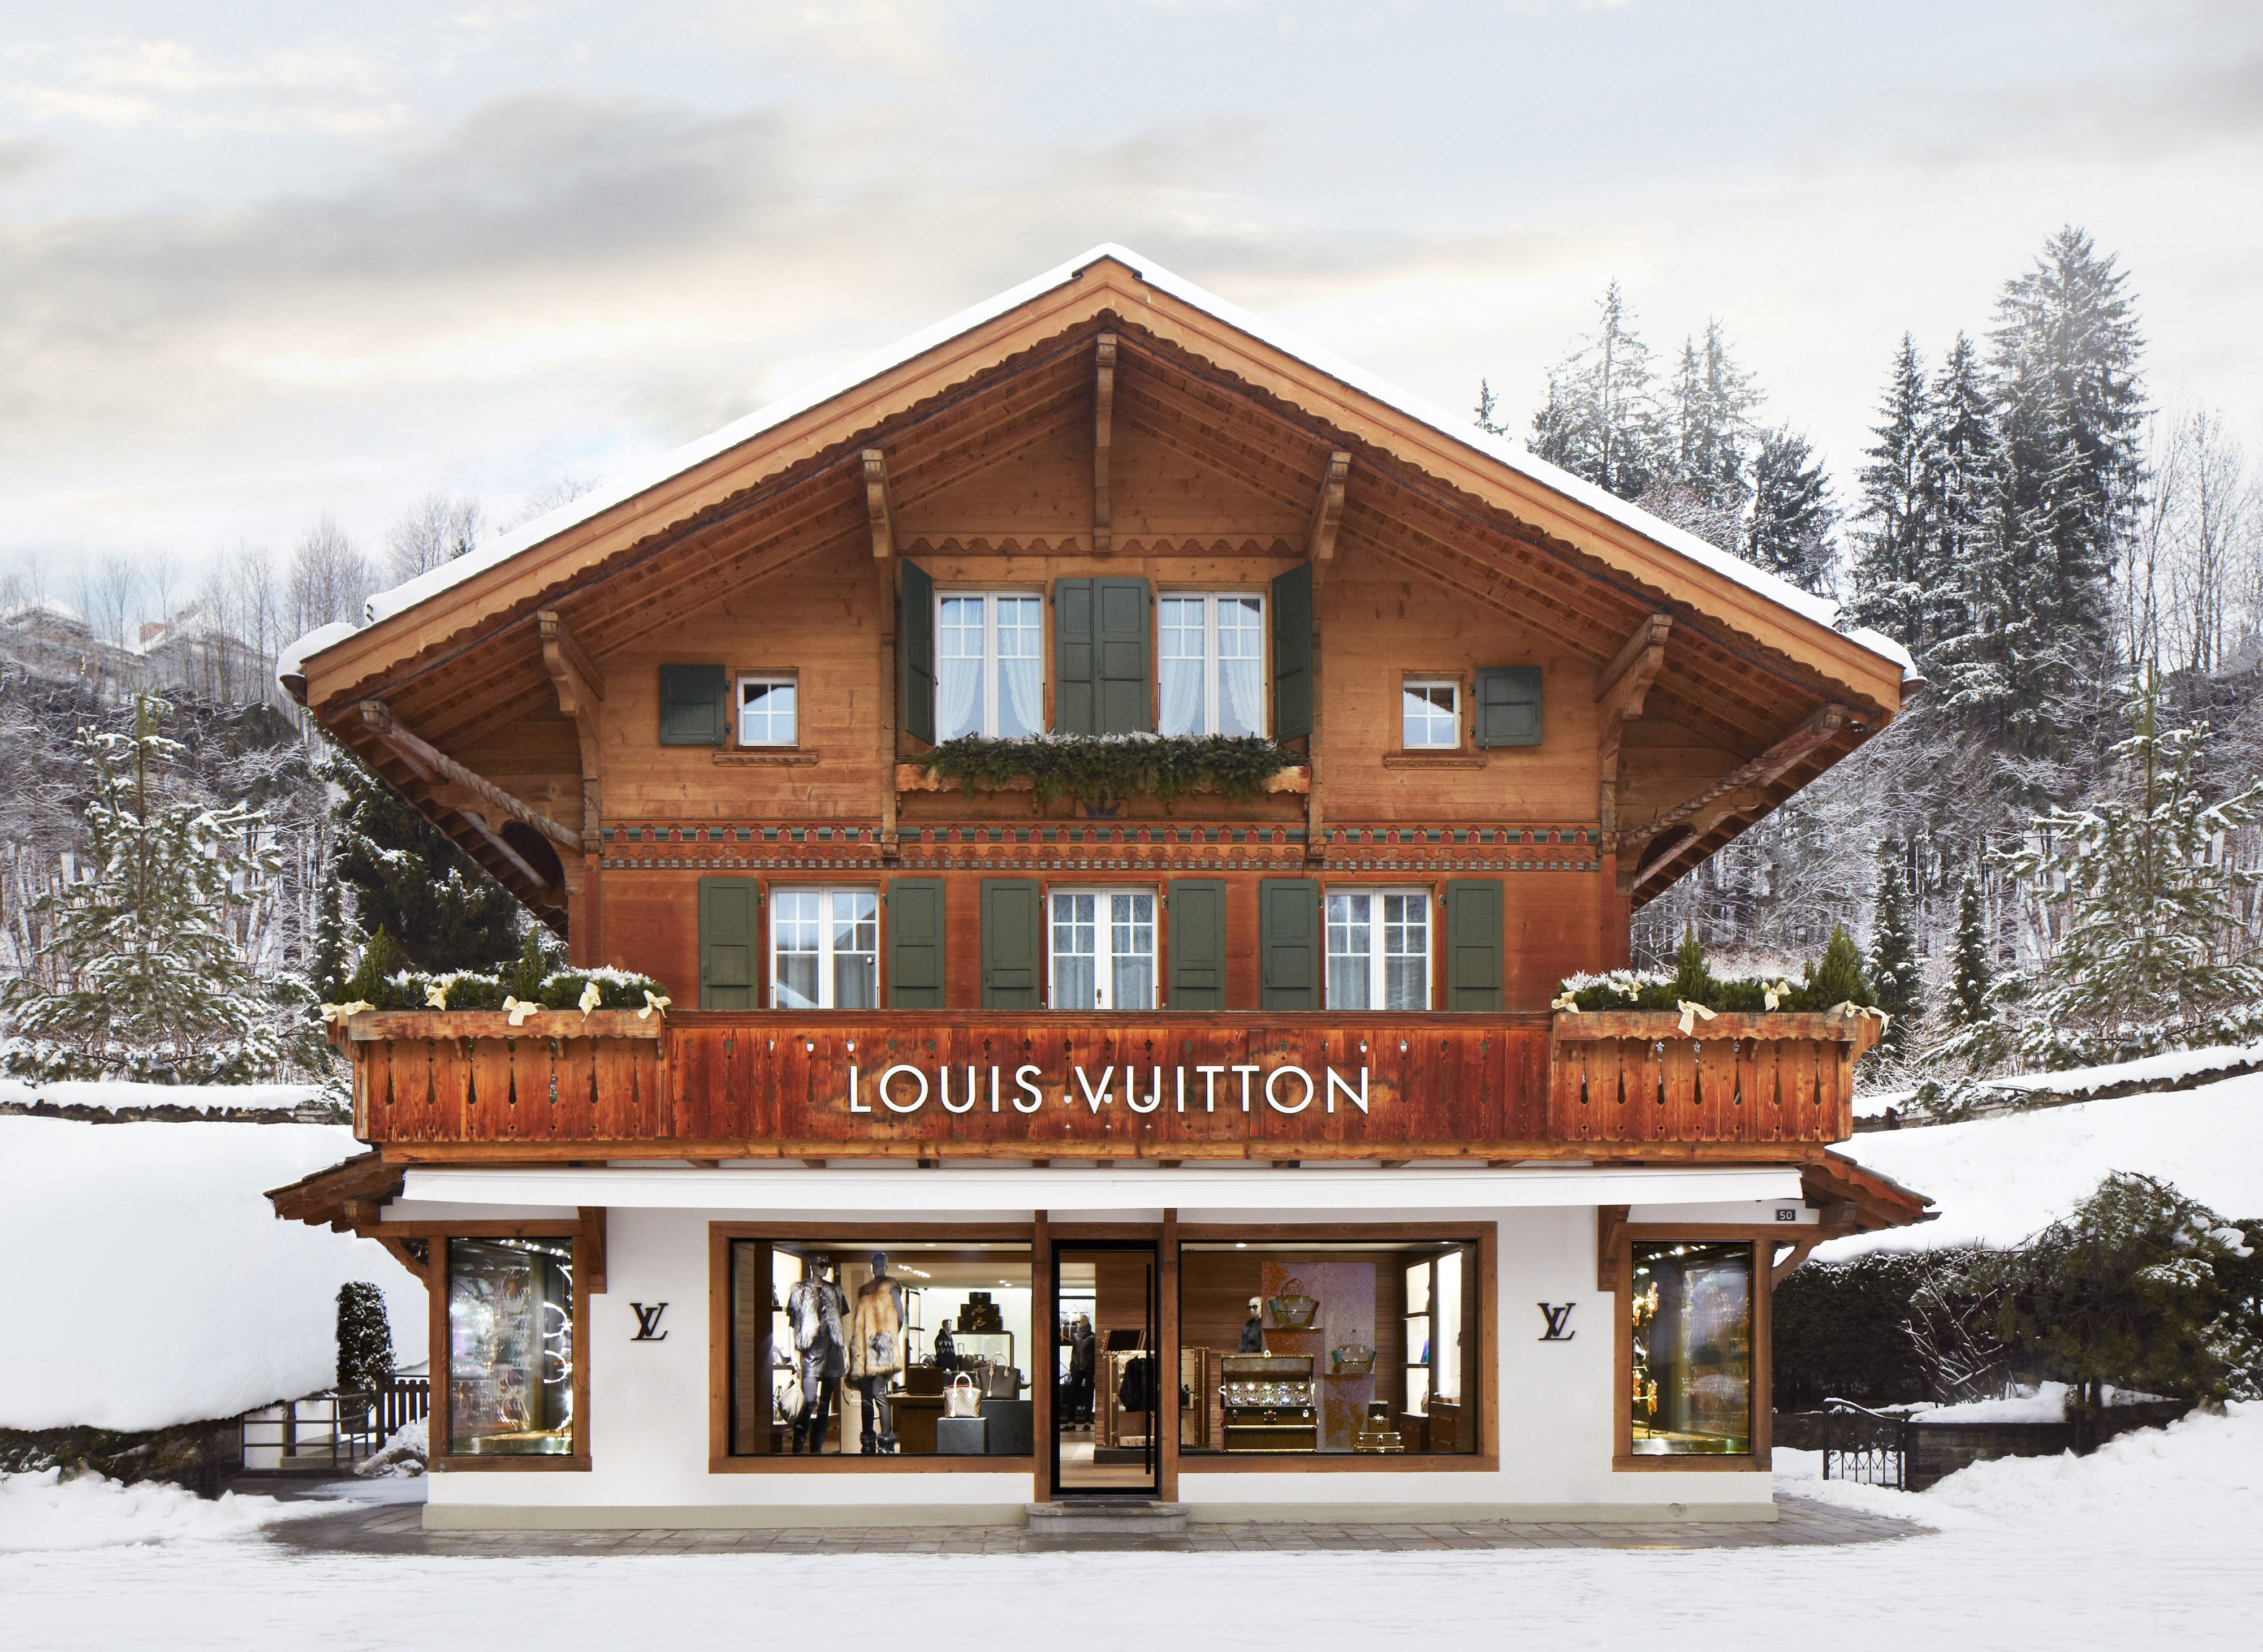 Louis Vuitton Winter Resort Store On The Renowned Promenade, Gstaad,